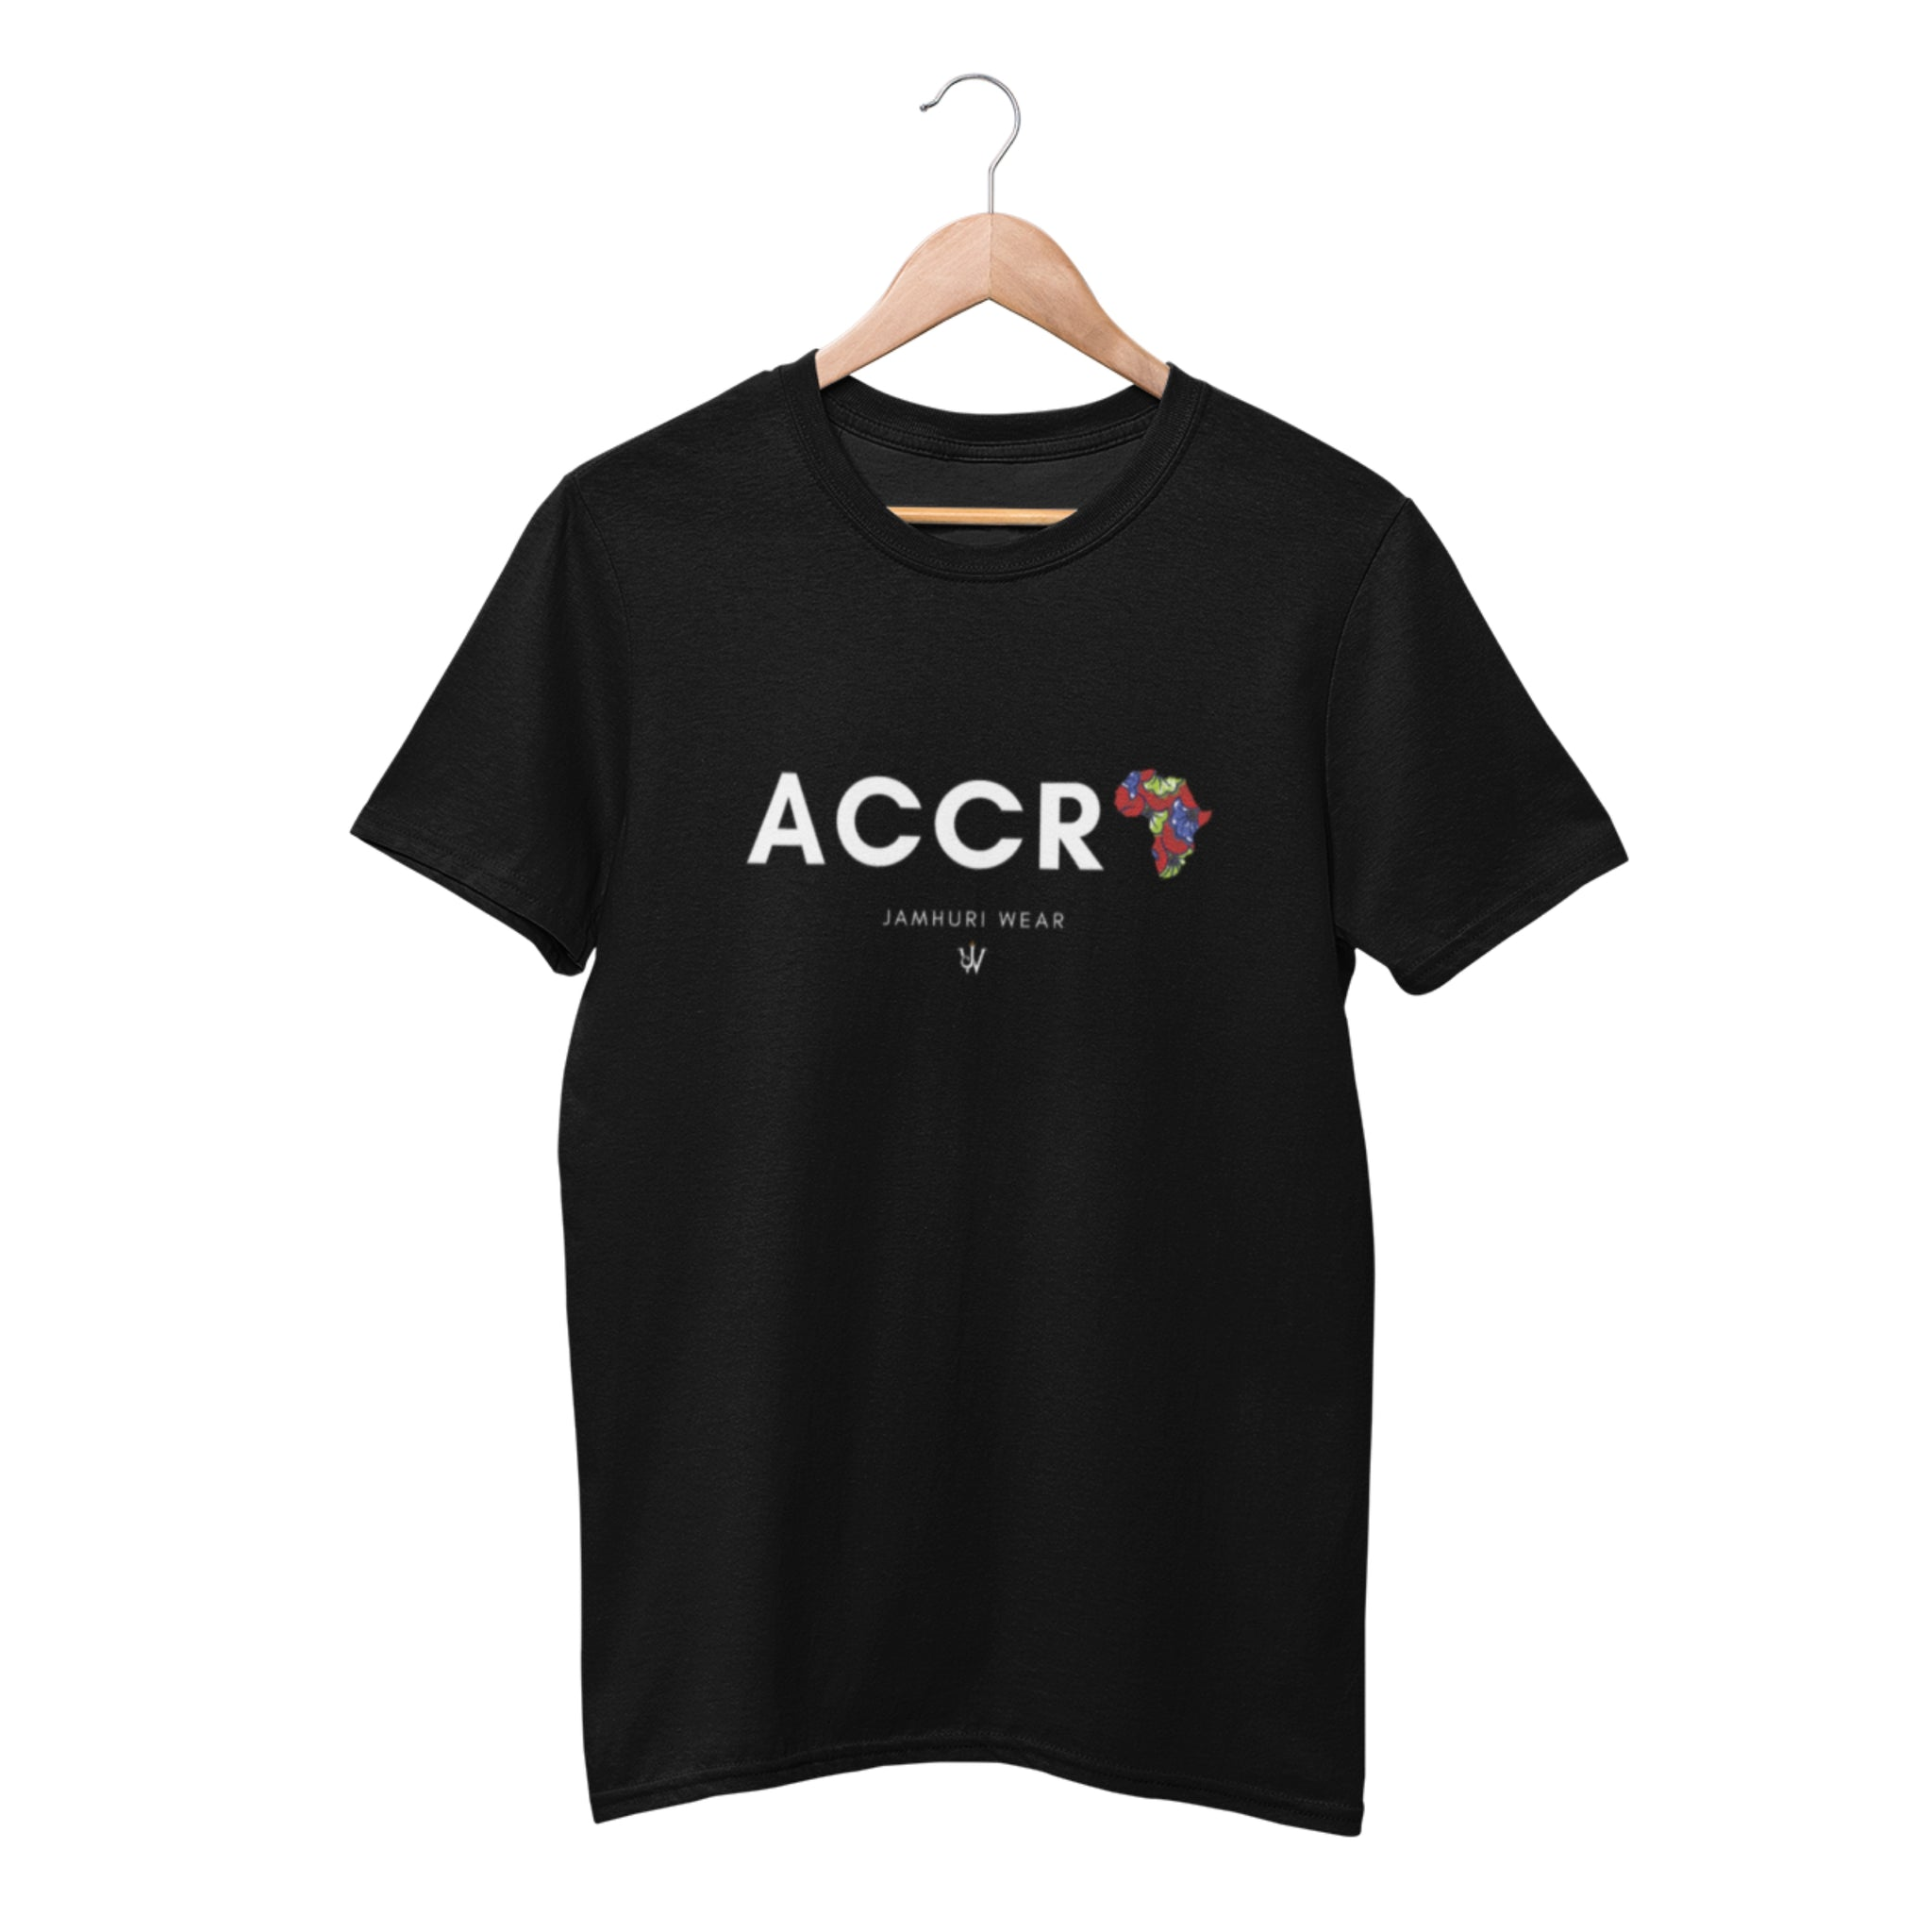 Accra A 4 Africa All City T-shirt - jamhuriwear.com